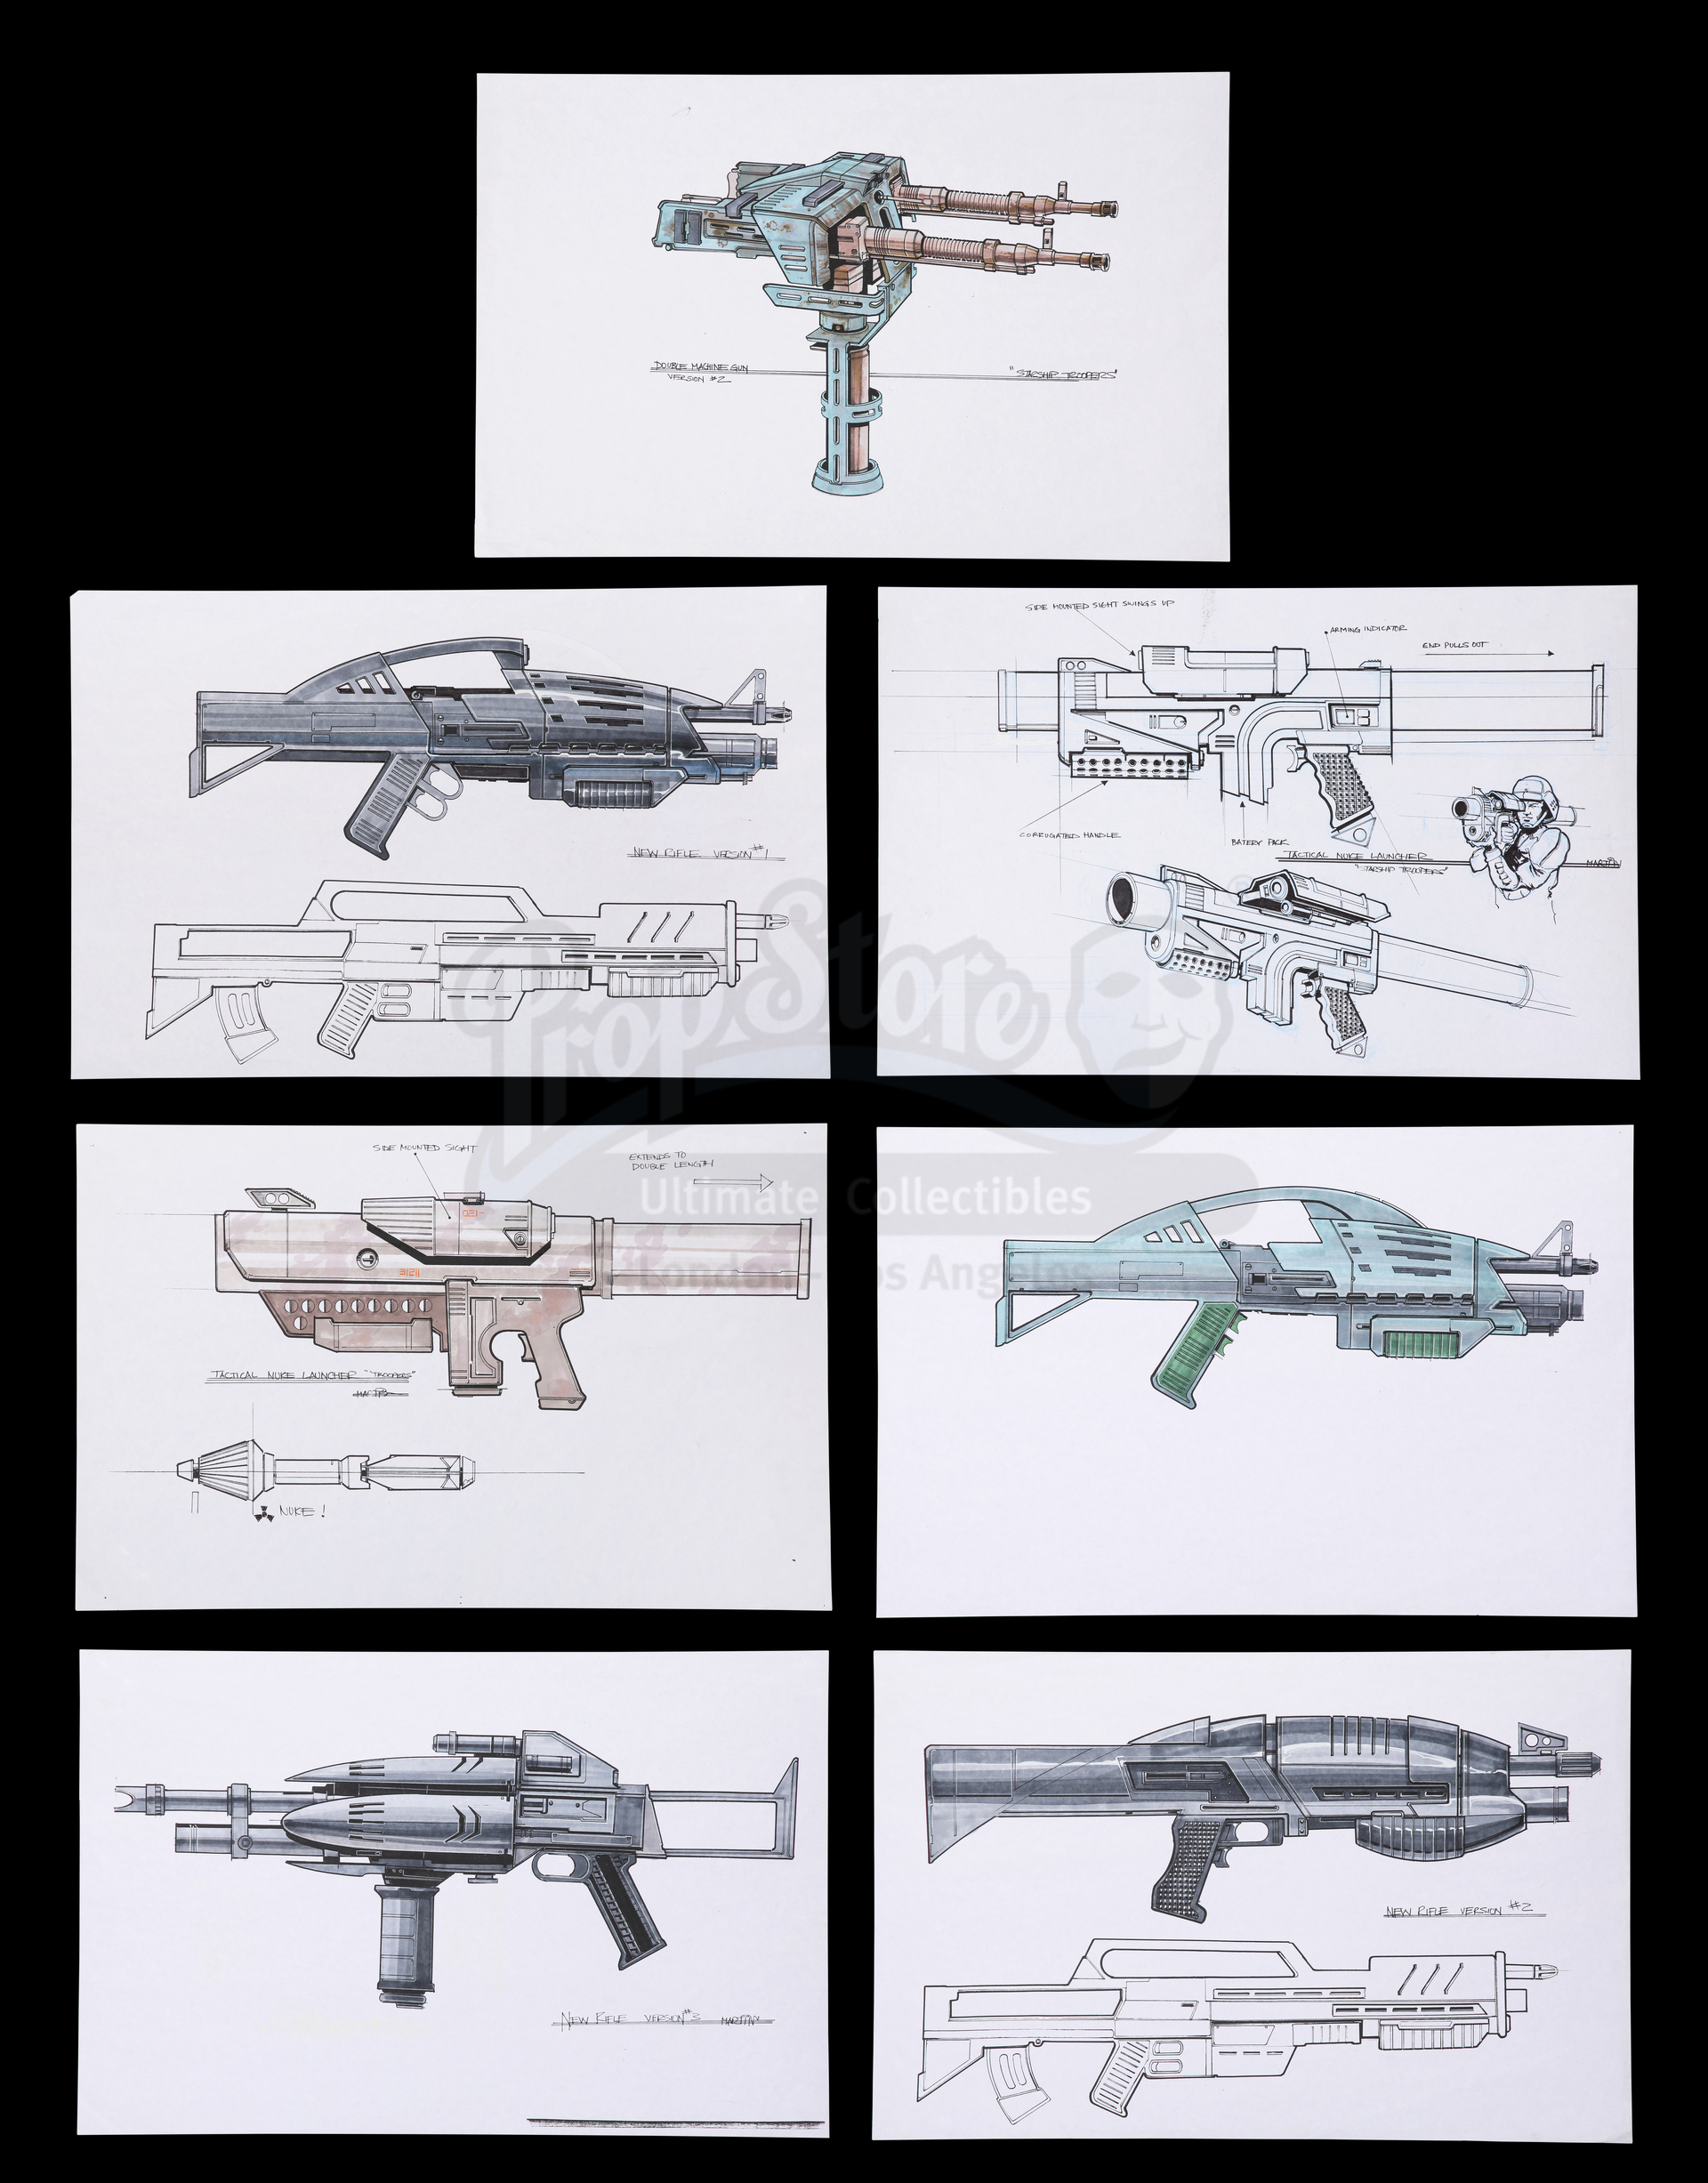 Lot # 1248: STARSHIP TROOPERS - Collection Of Hand-Painted and Hand-Drawn Concepts for Weapons